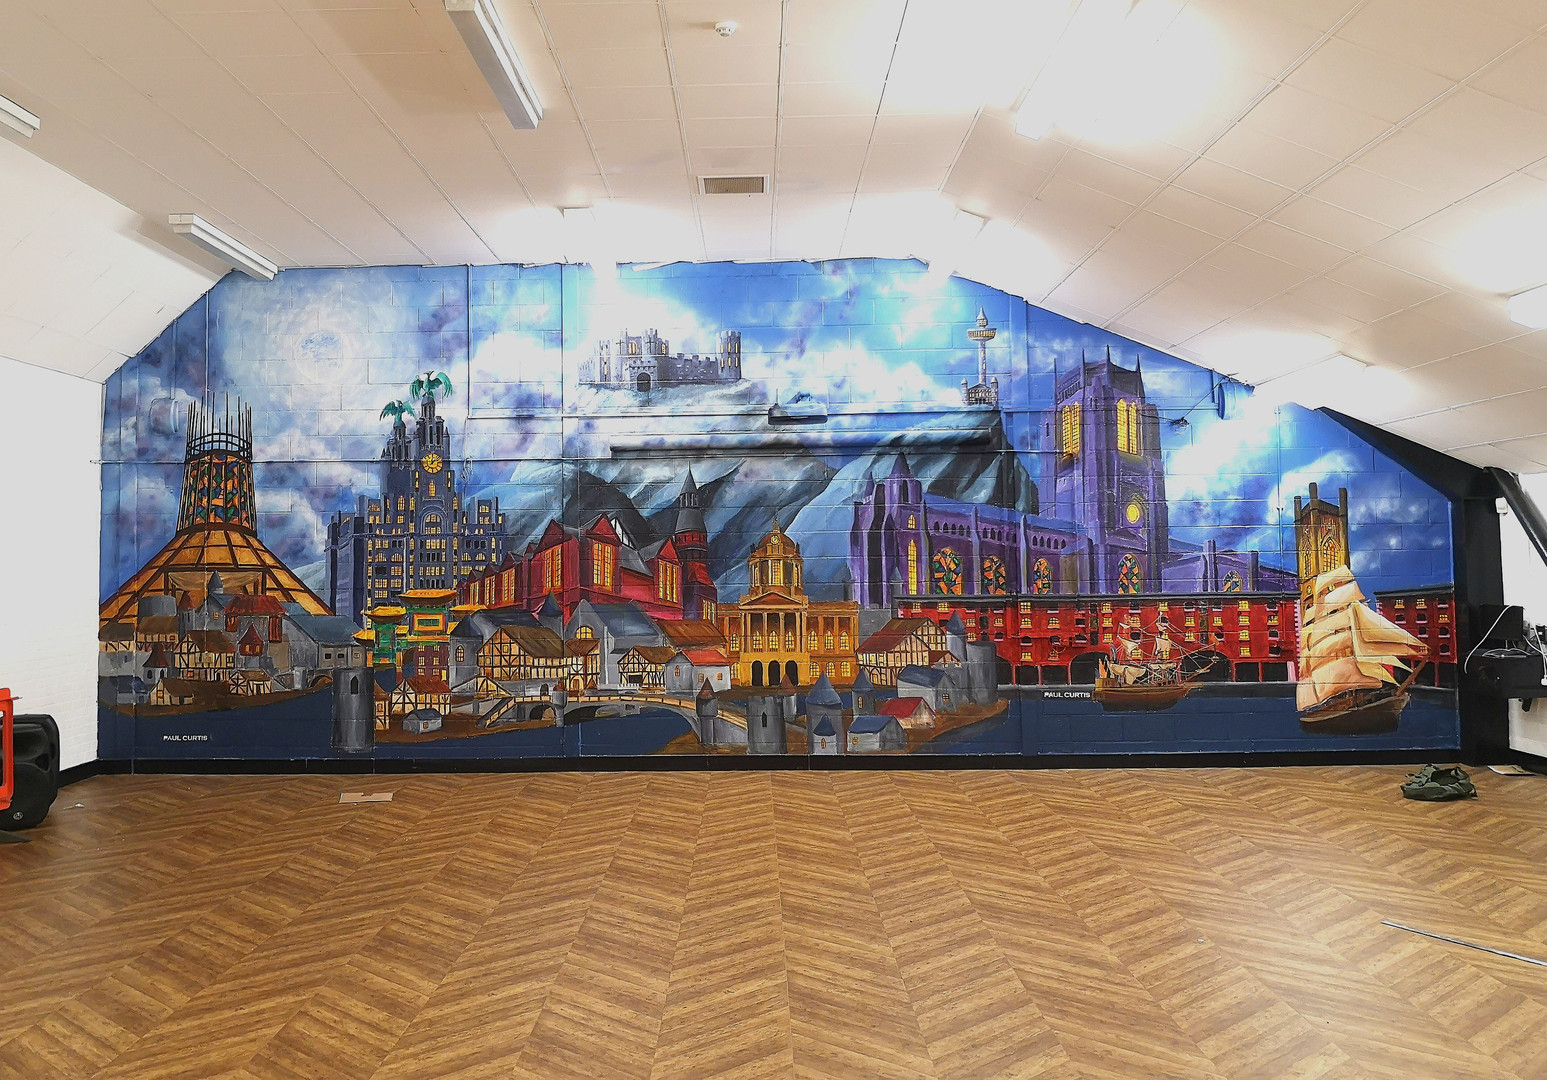 Liverpool Harry Potter mural, Paul Curti